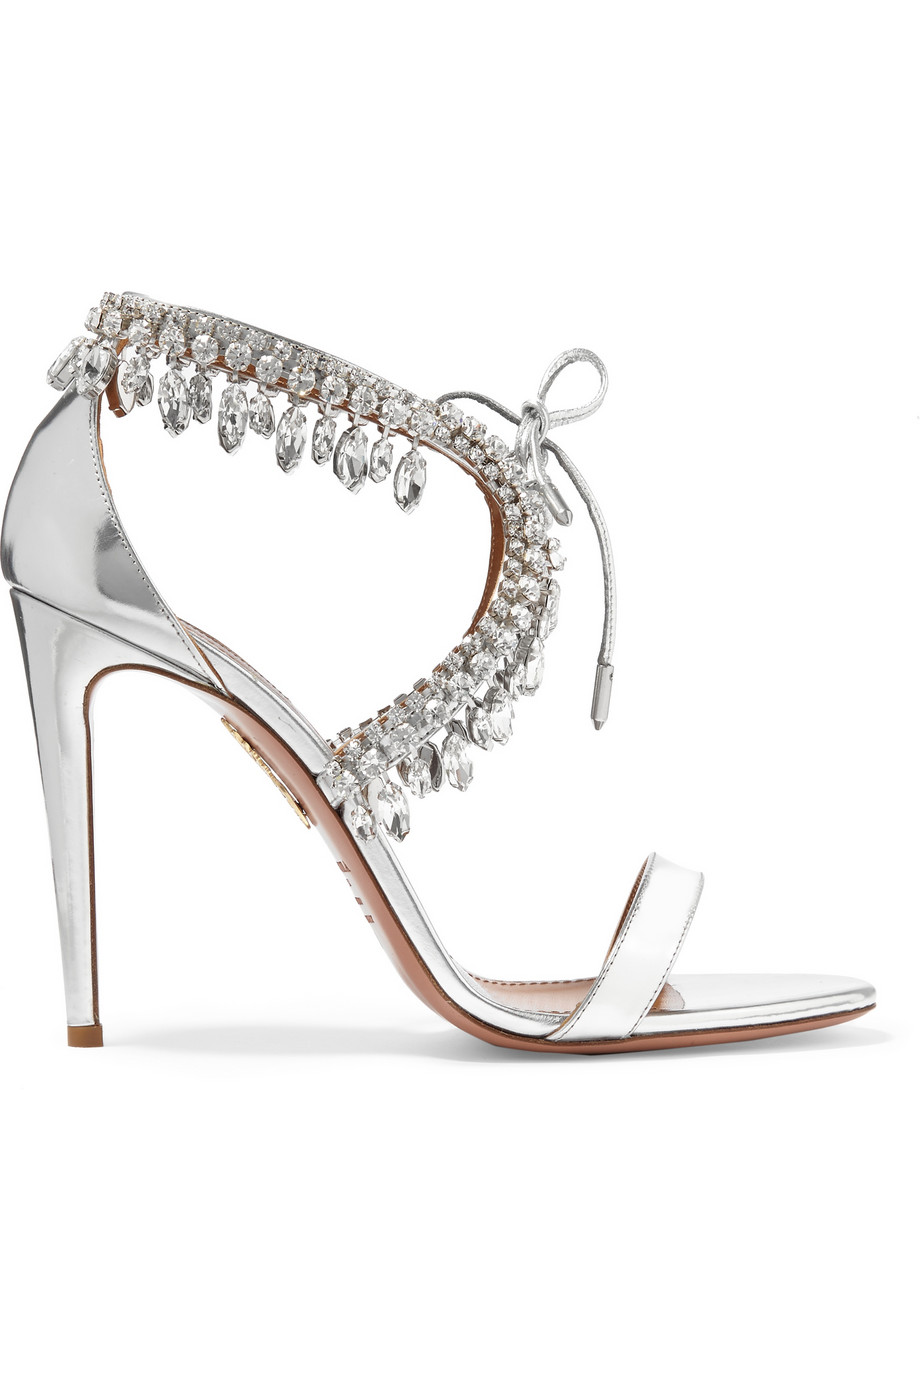 83 Best Wedding Shoes - Ivory, Silver, Blue, and More Bridal Heels ...